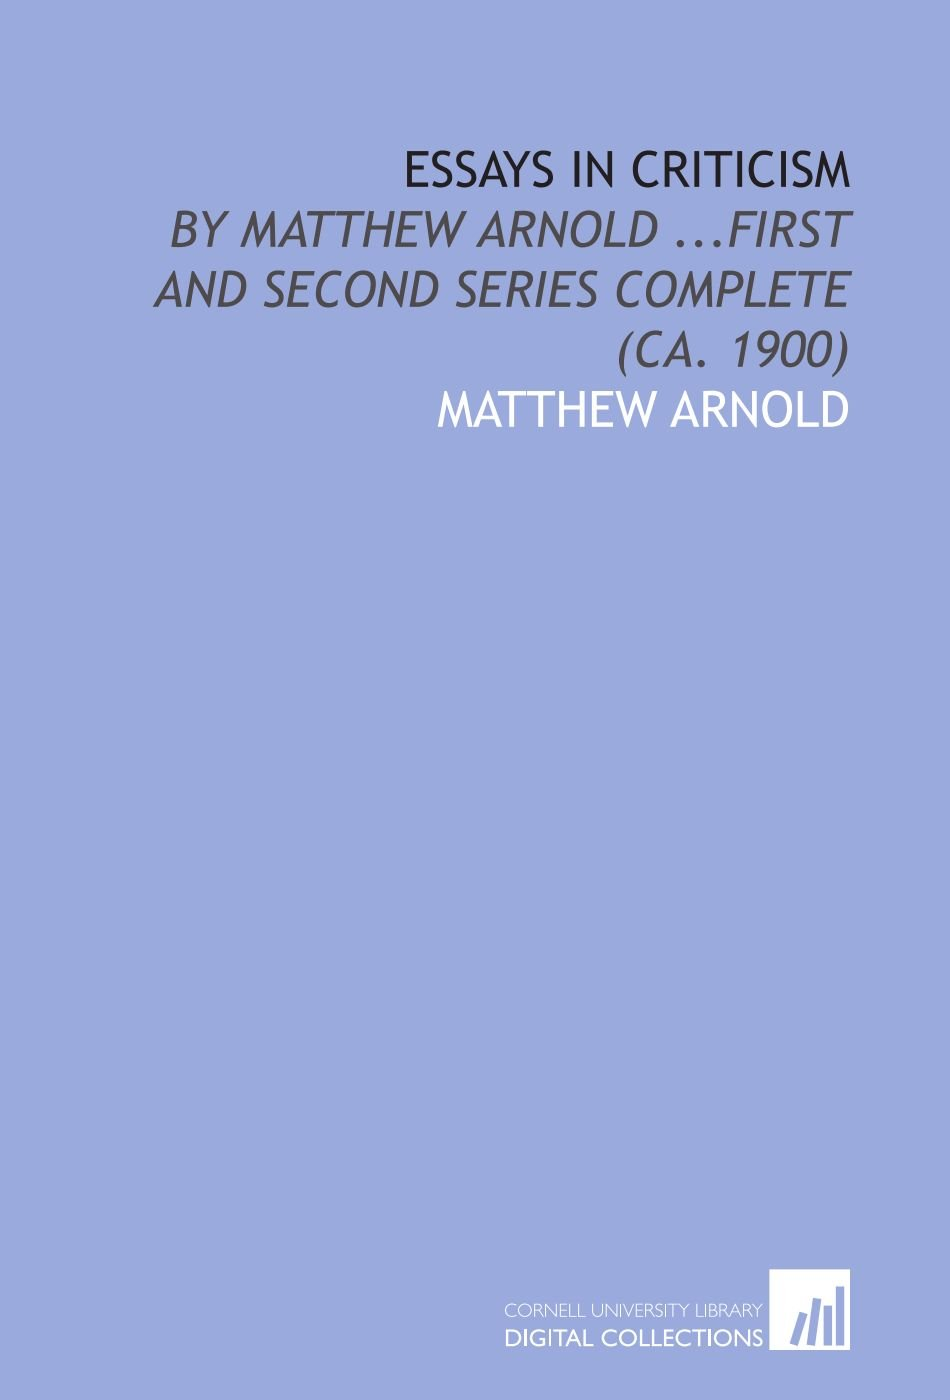 essays in criticism by matthew arnold first and second series essays in criticism by matthew arnold first and second series complete ca 1900 matthew arnold 9781429762595 amazon com books